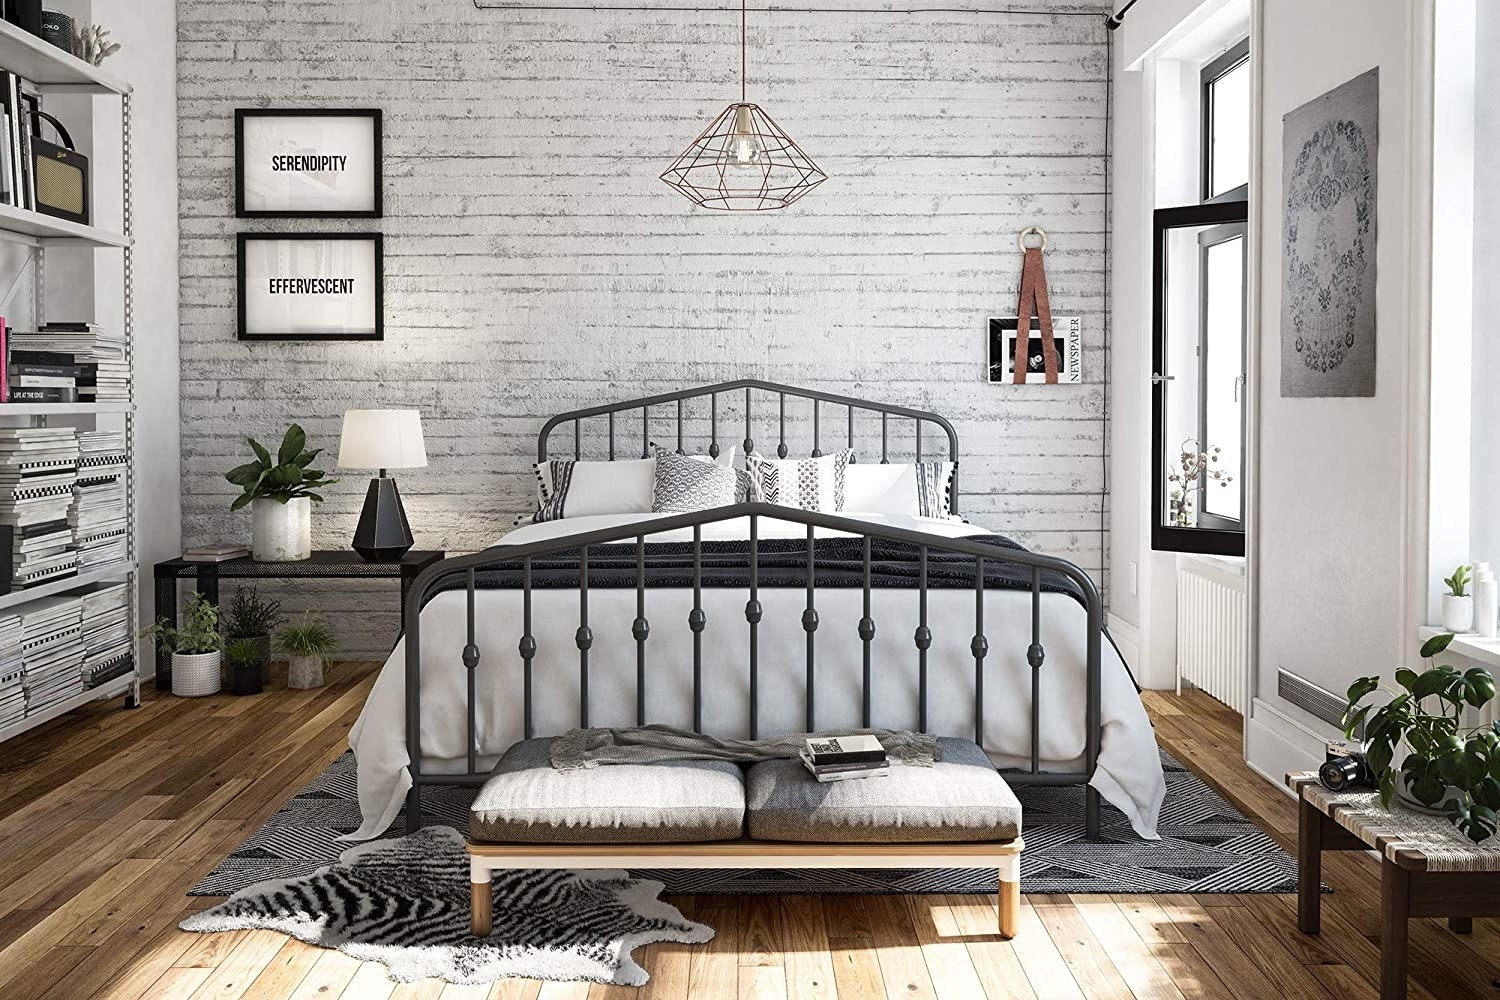 A metal bed frame in dark grey with round finial posts on the headboard and foot board in a bedroom